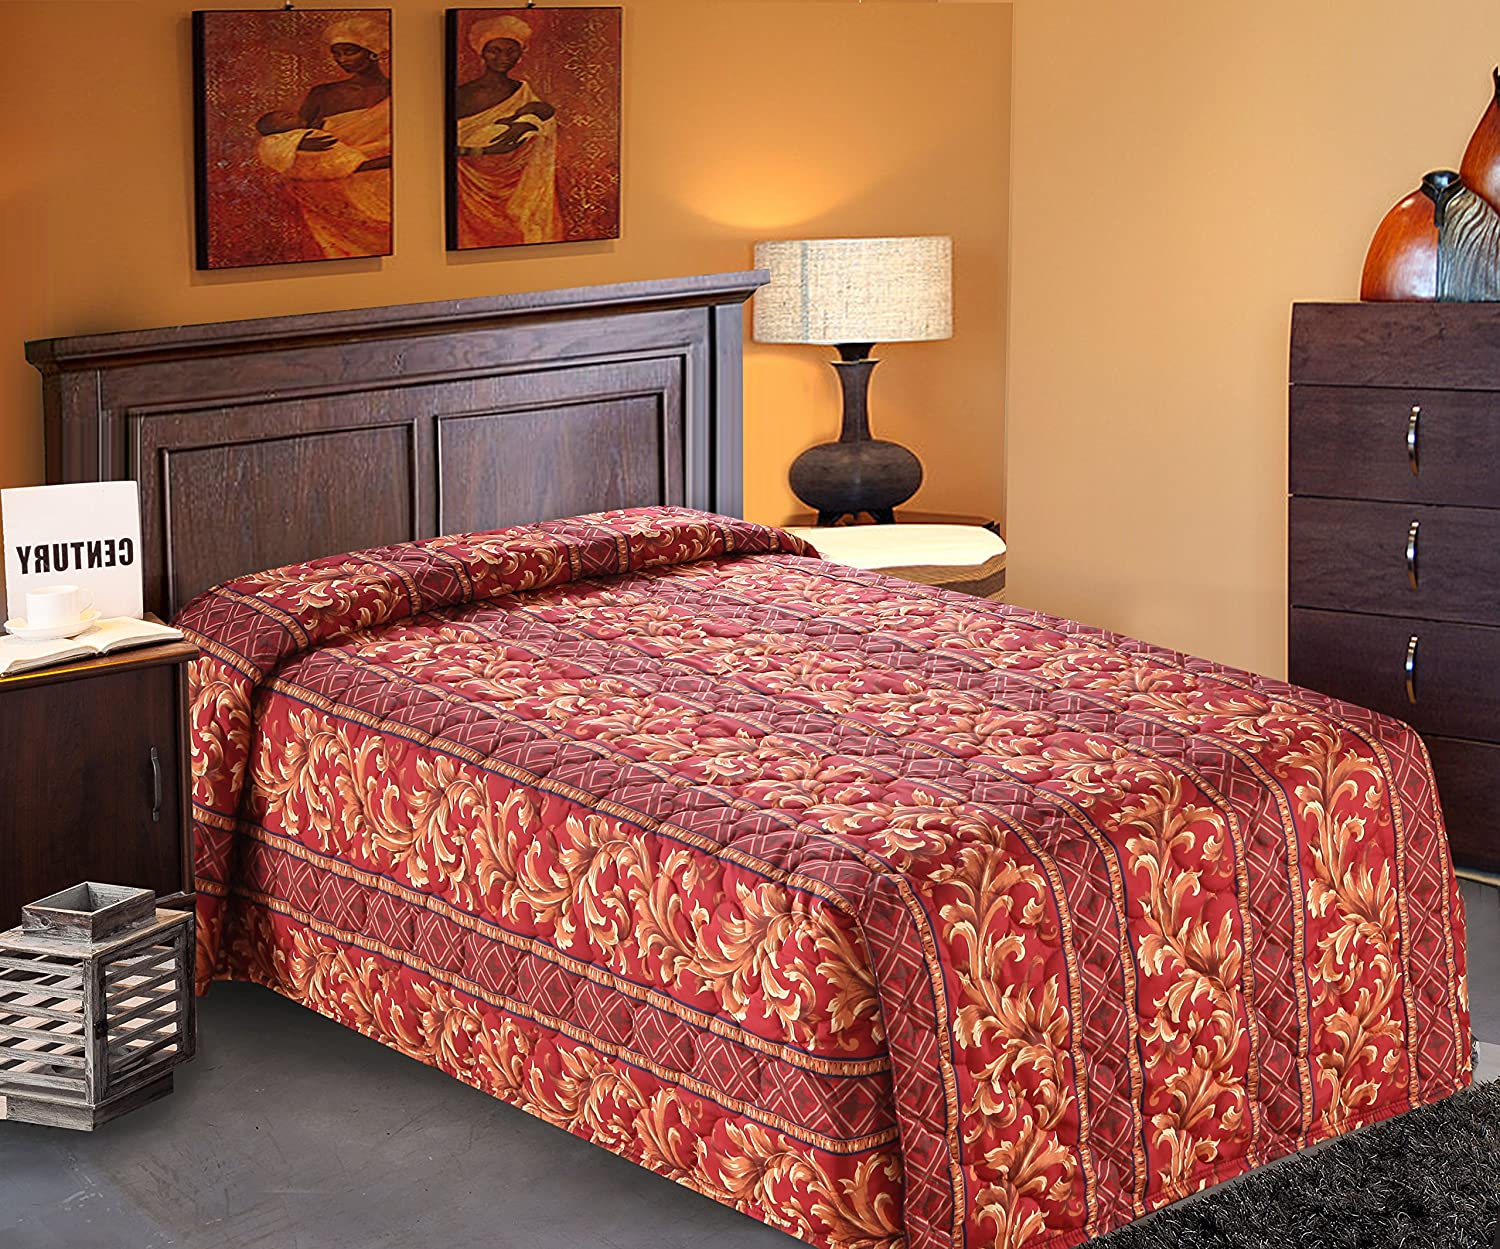 Full//Full XL 96x118-6.0 lbs Everest Supply Quilted Bedspread Designed for Hotel//Motel Resort Home Over Sized 21 Fall on Each Side 100/% Polyester Fabric-Modern Print-Orange-Waterfall Style